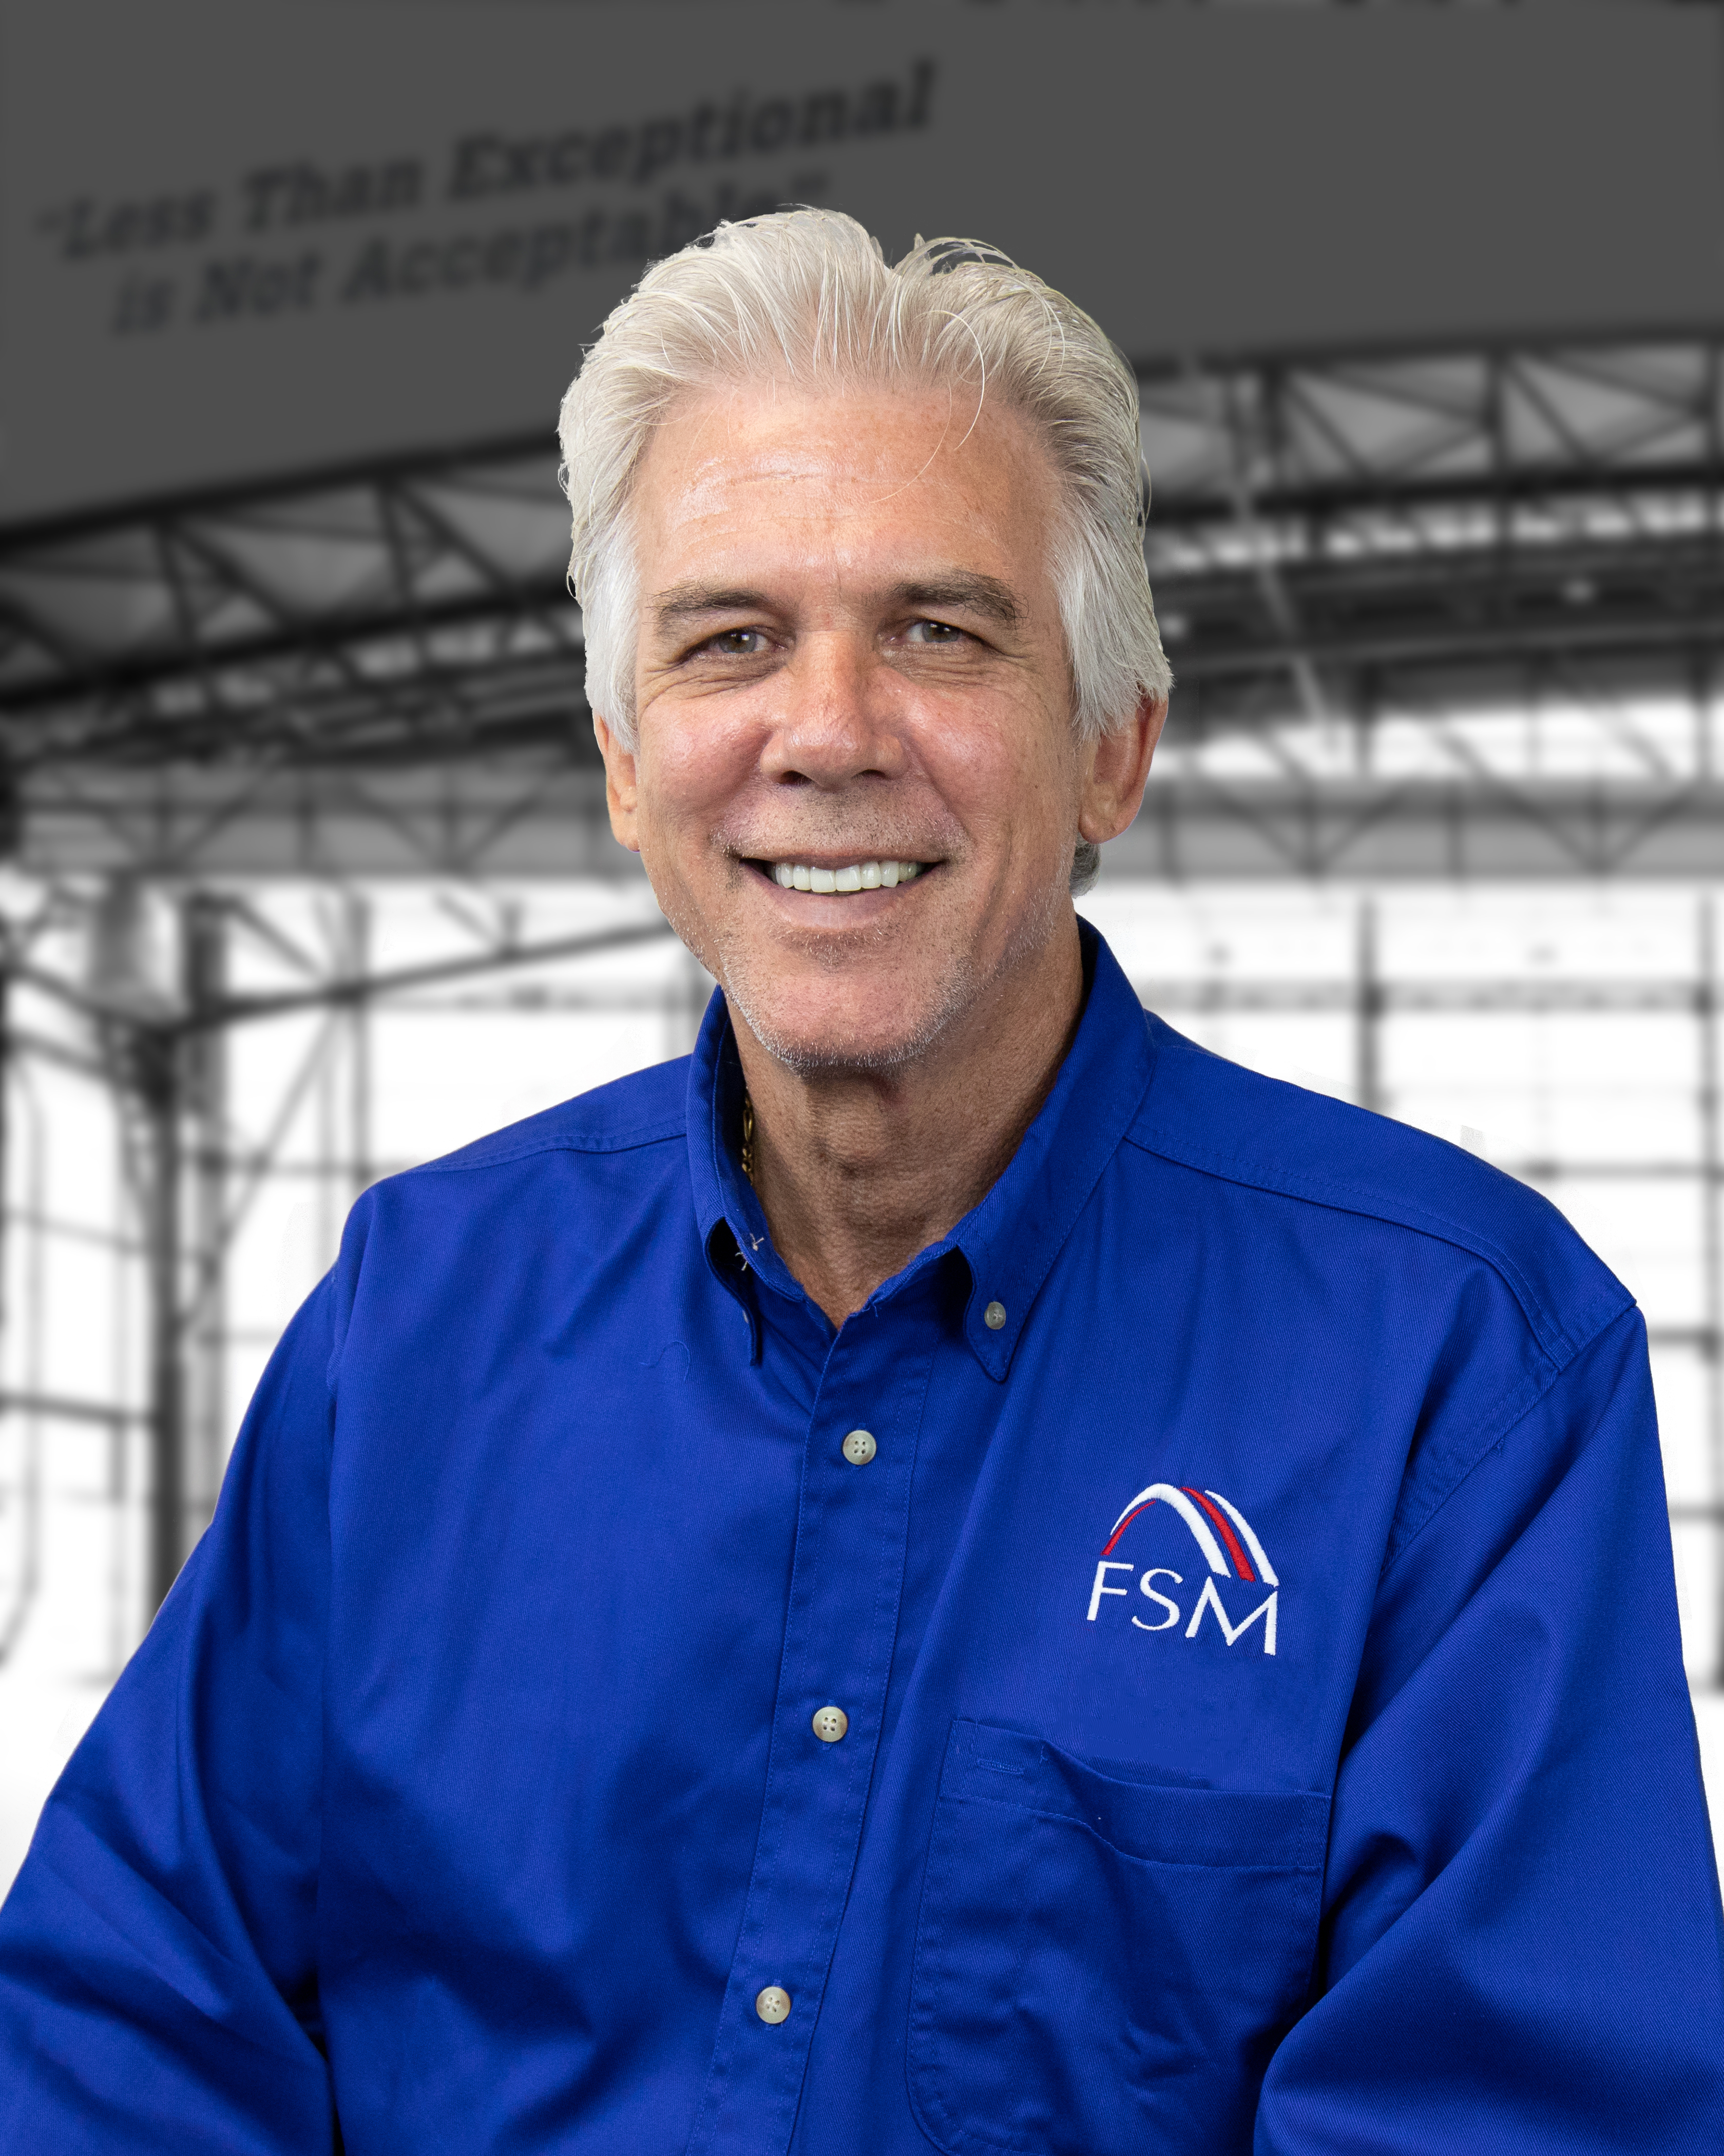 FSM Ken Woody Service Manager